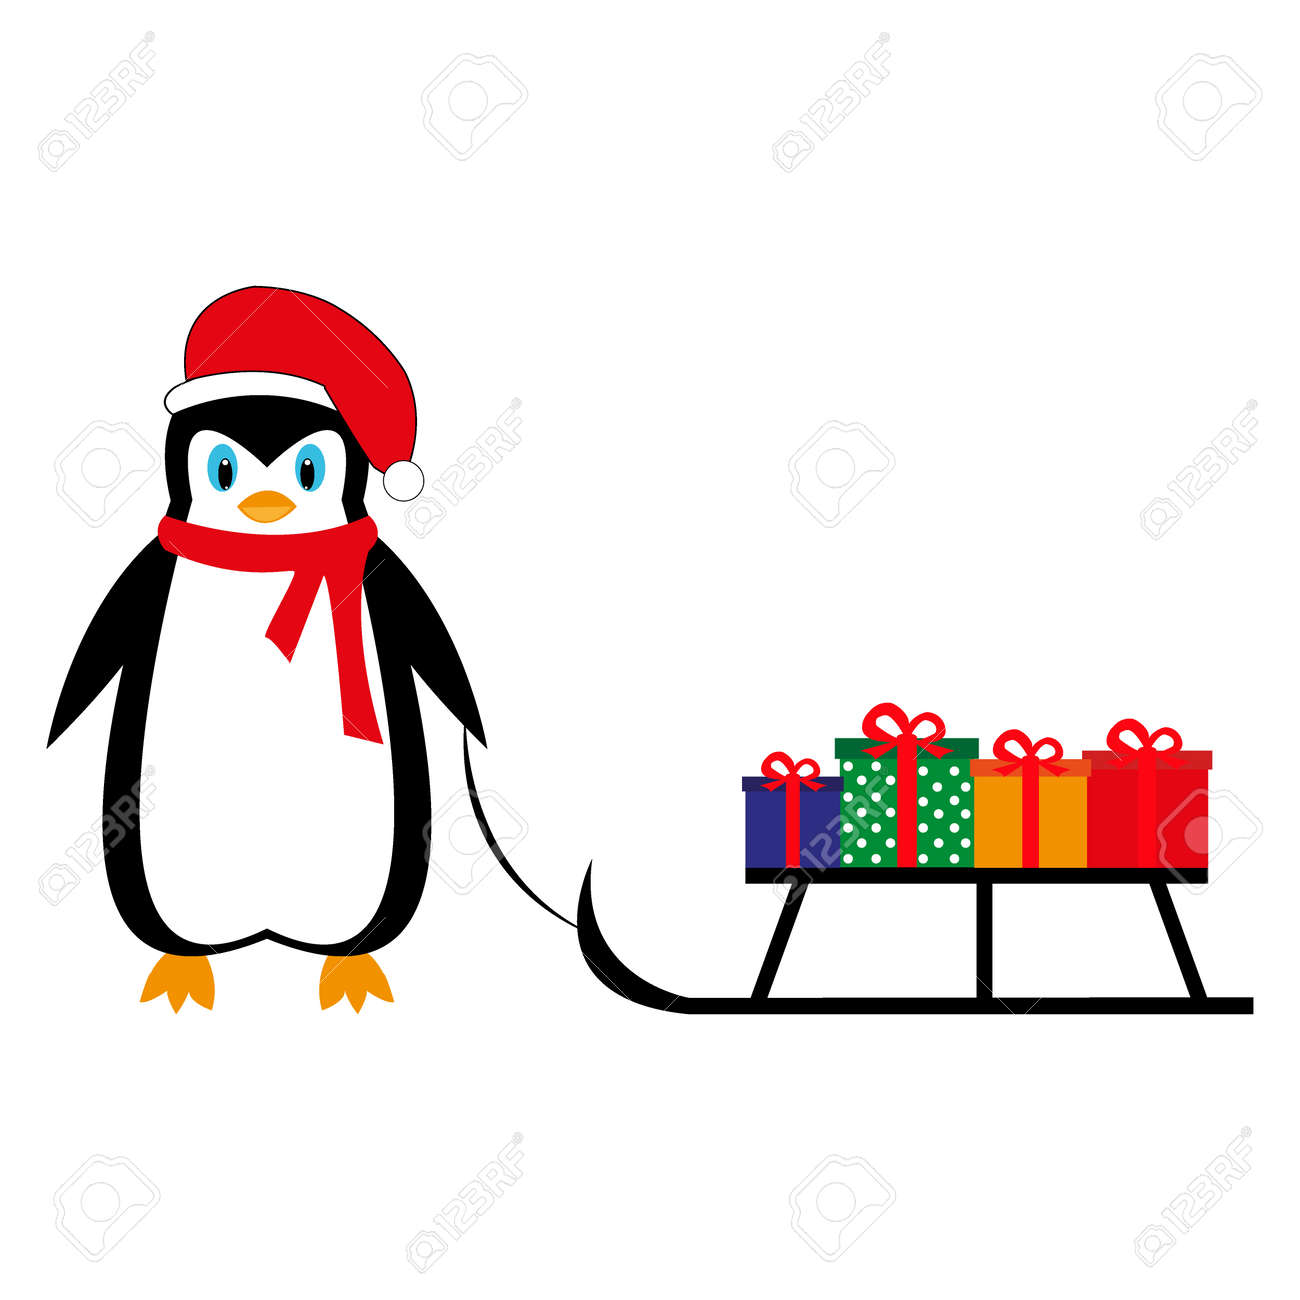 cartoon penguin is bringing new year gifts on a sleigh stock vector 88412215